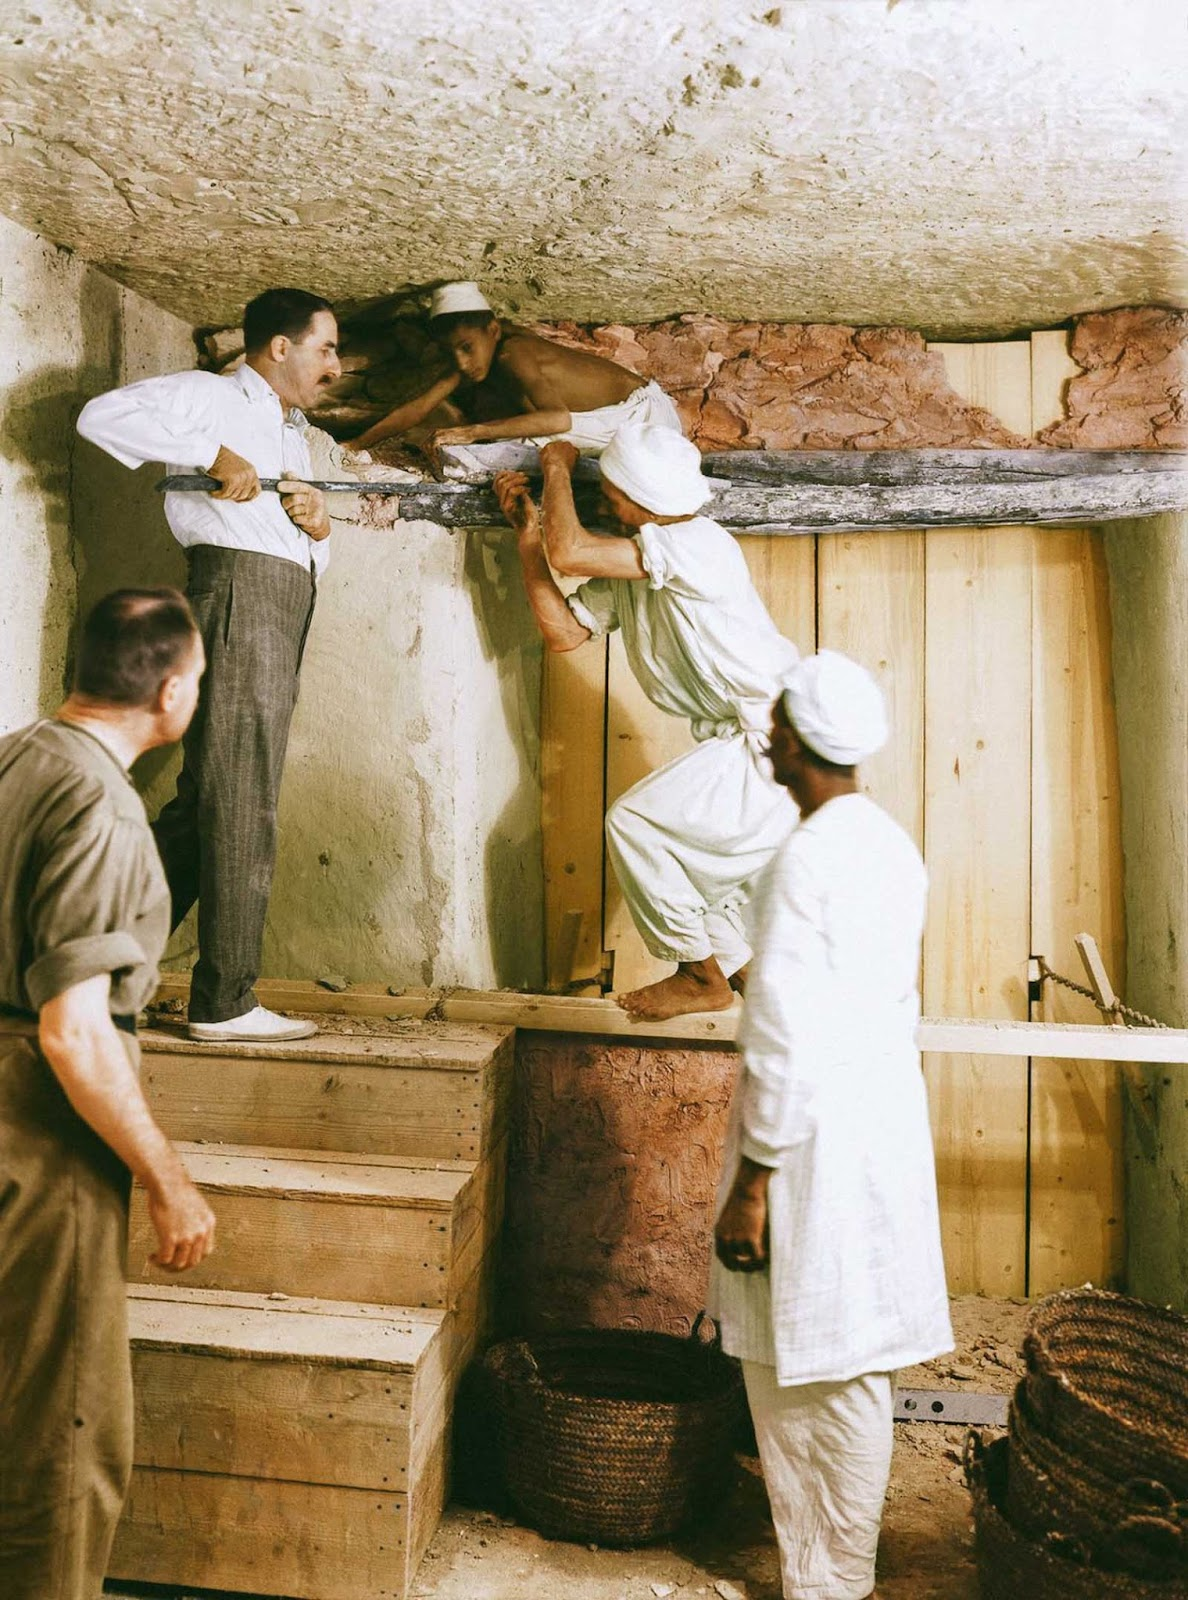 Carter, Callende, and two workers remove the partition wall between the antechamber and the burial chamber.